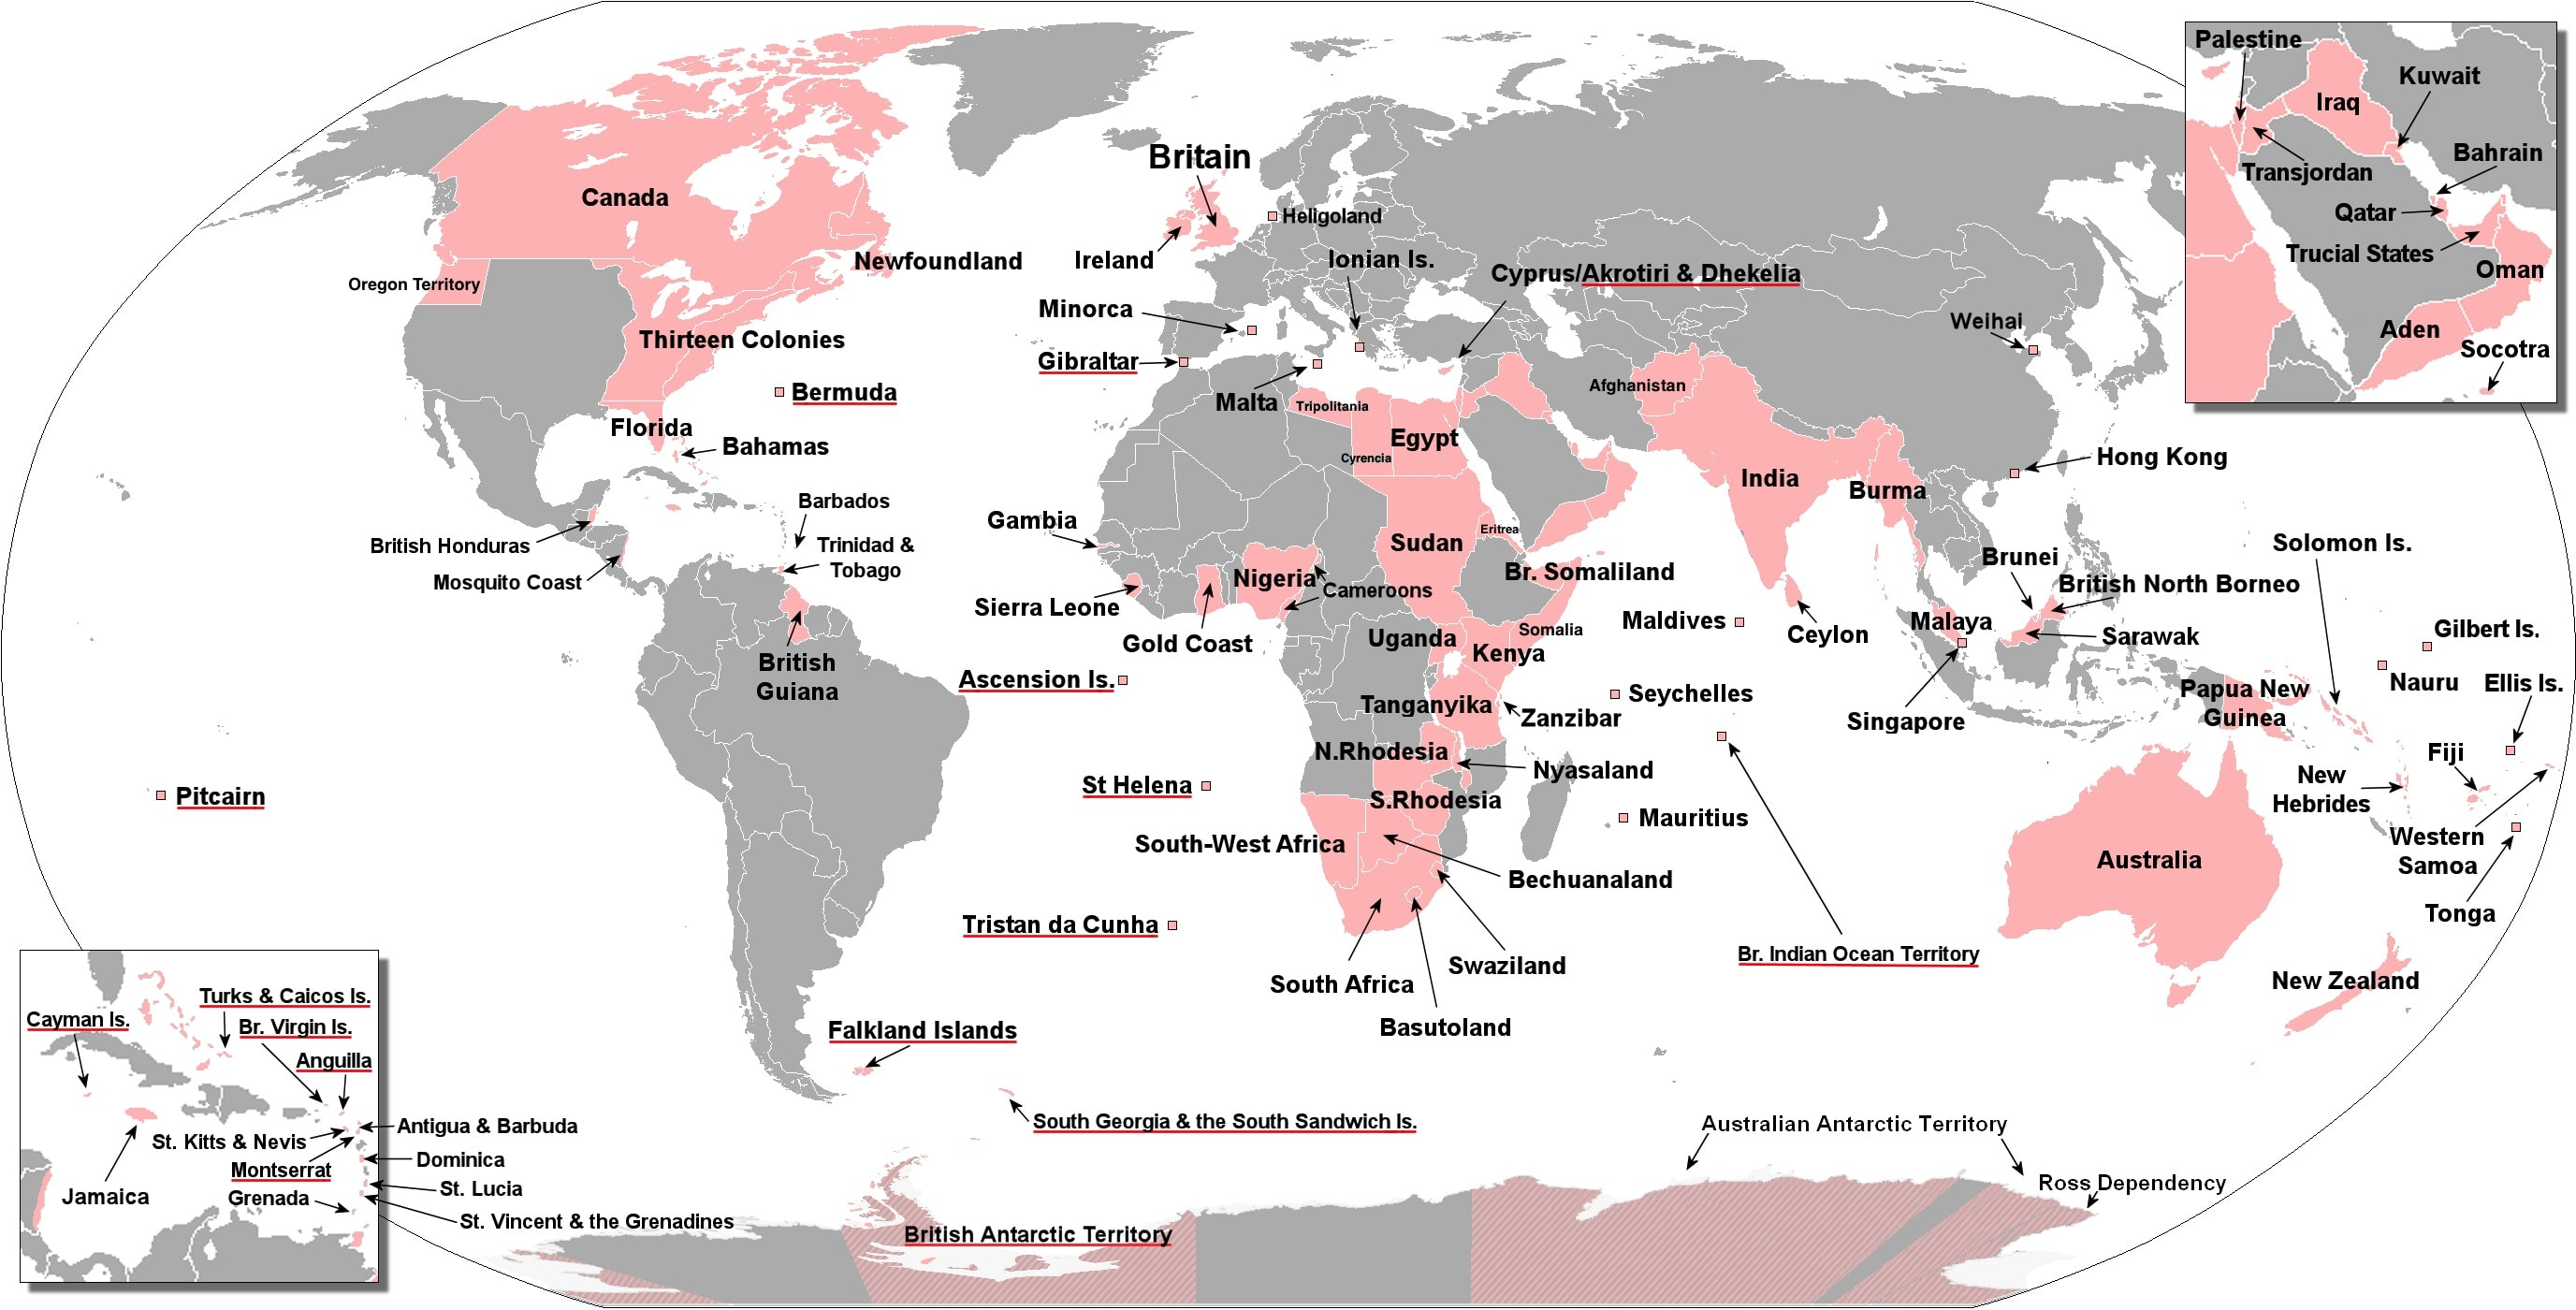 The British Empire at the height of rule, and how British DNA was spread around the world